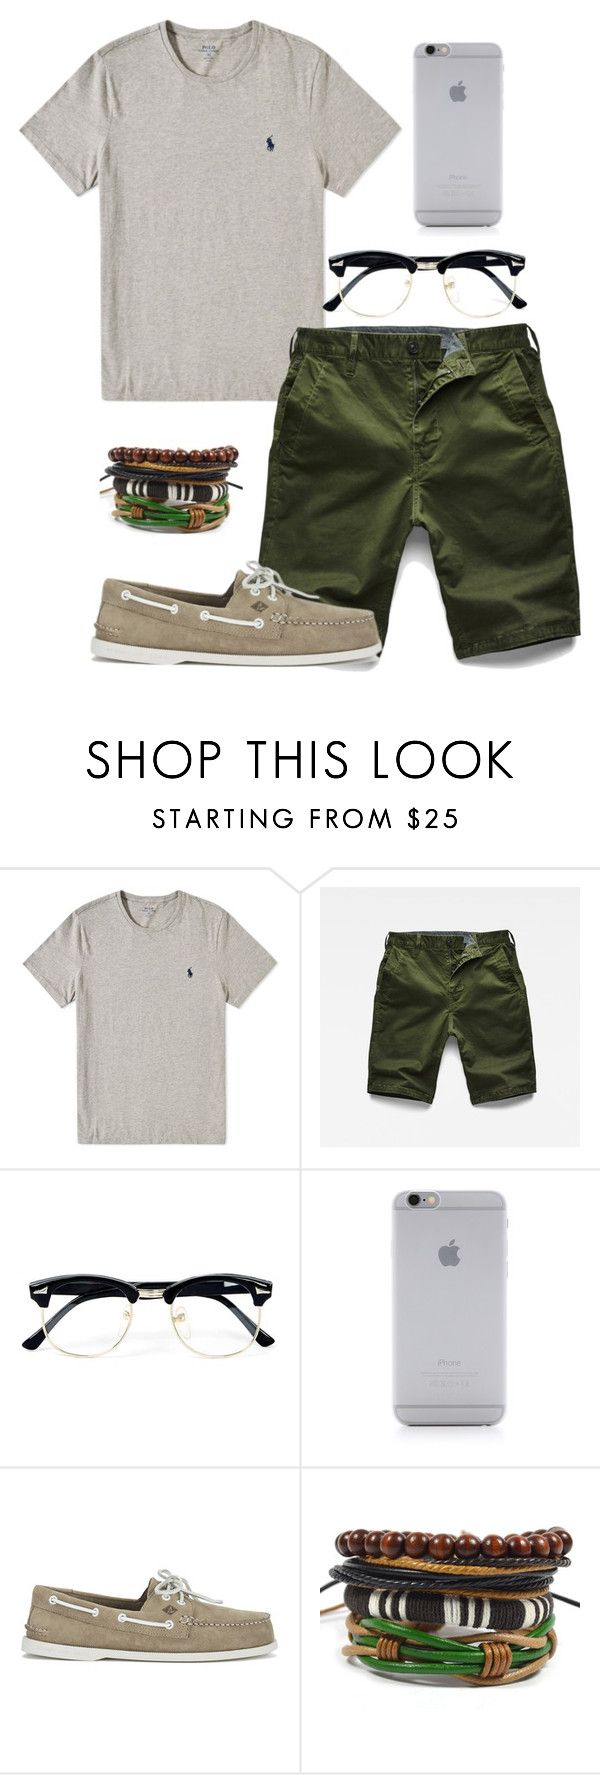 """""""Summer16 men"""" by ivy-goddard ❤ liked on Polyvore featuring G-Star Raw, Topman, Native Union, Sperry, men's fashion and menswear"""